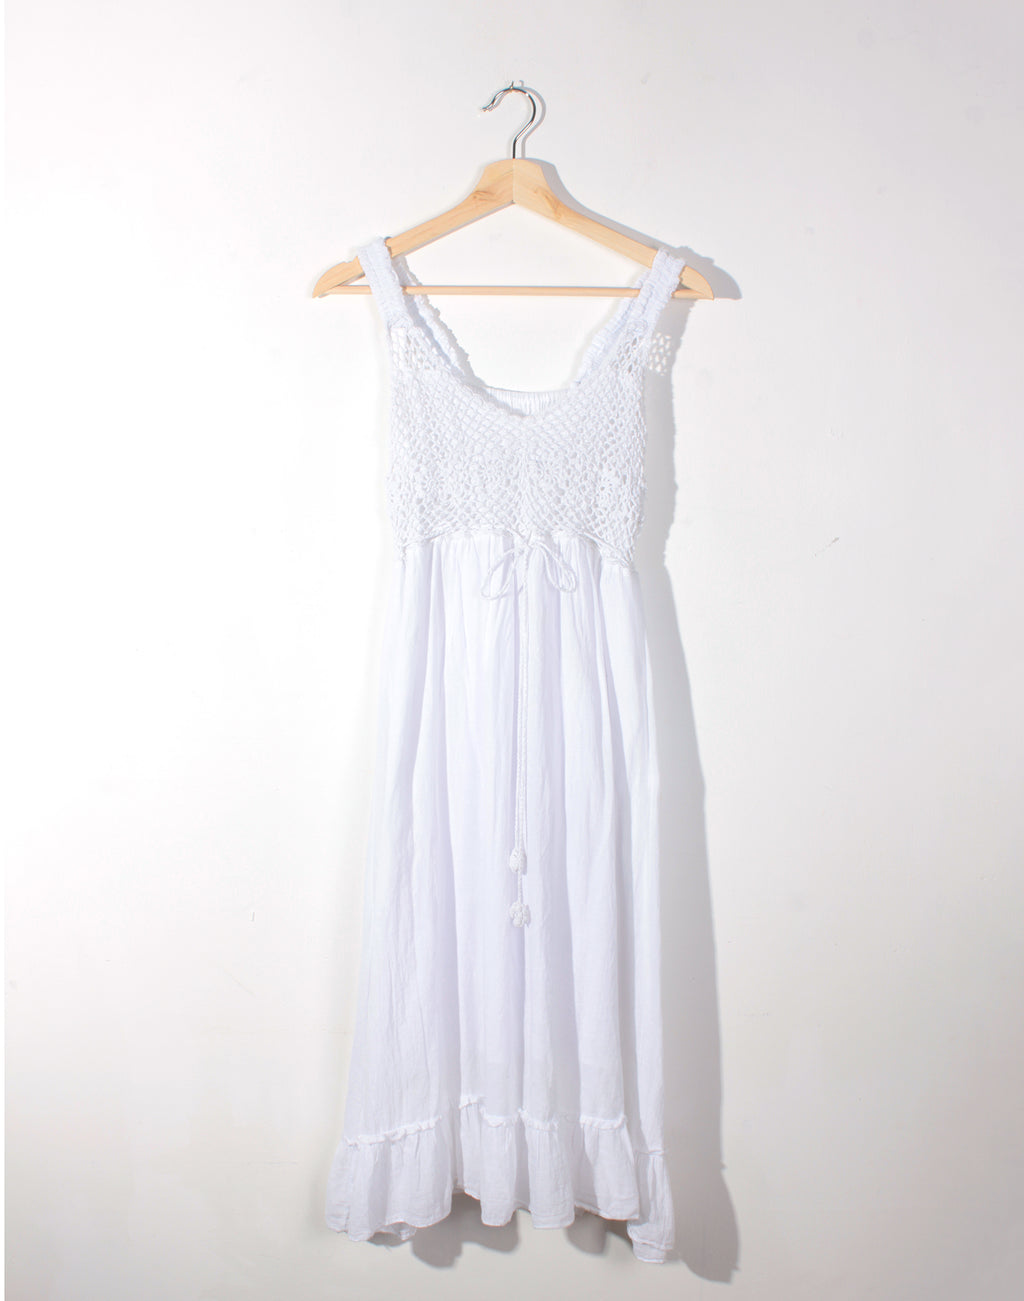 Vintage 90's White Crochet Detail Dress